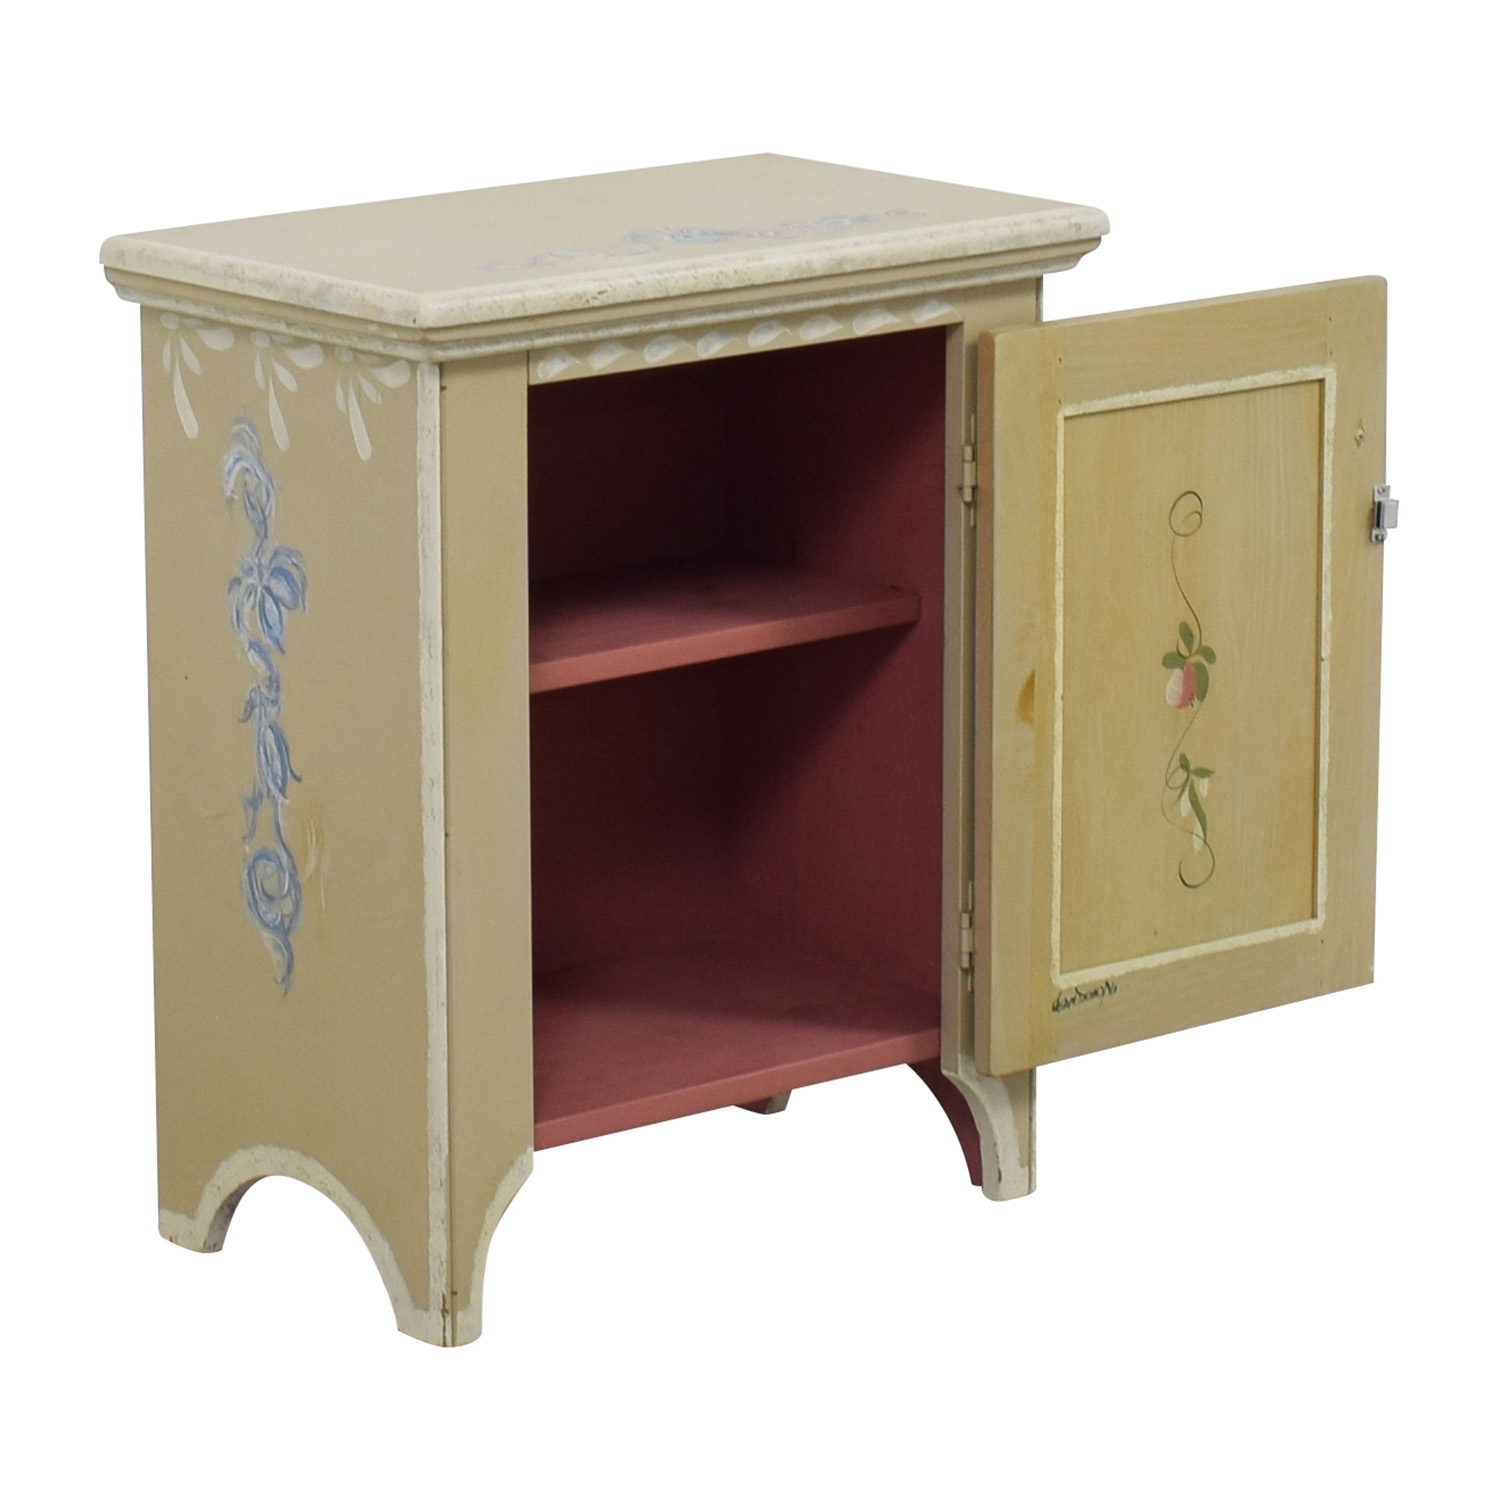 42% Off  Stencil Painted Side Table  Tables. Build An Island From Kitchen Cabinets. 36 Kitchen Cabinet. Kitchen Cabinet Door Parts. Setting Kitchen Cabinets. How To Decorate Kitchen Cabinets Tops. Kitchen Cabinets Nc. Showroom Kitchen Cabinets For Sale. How Can I Paint Kitchen Cabinets